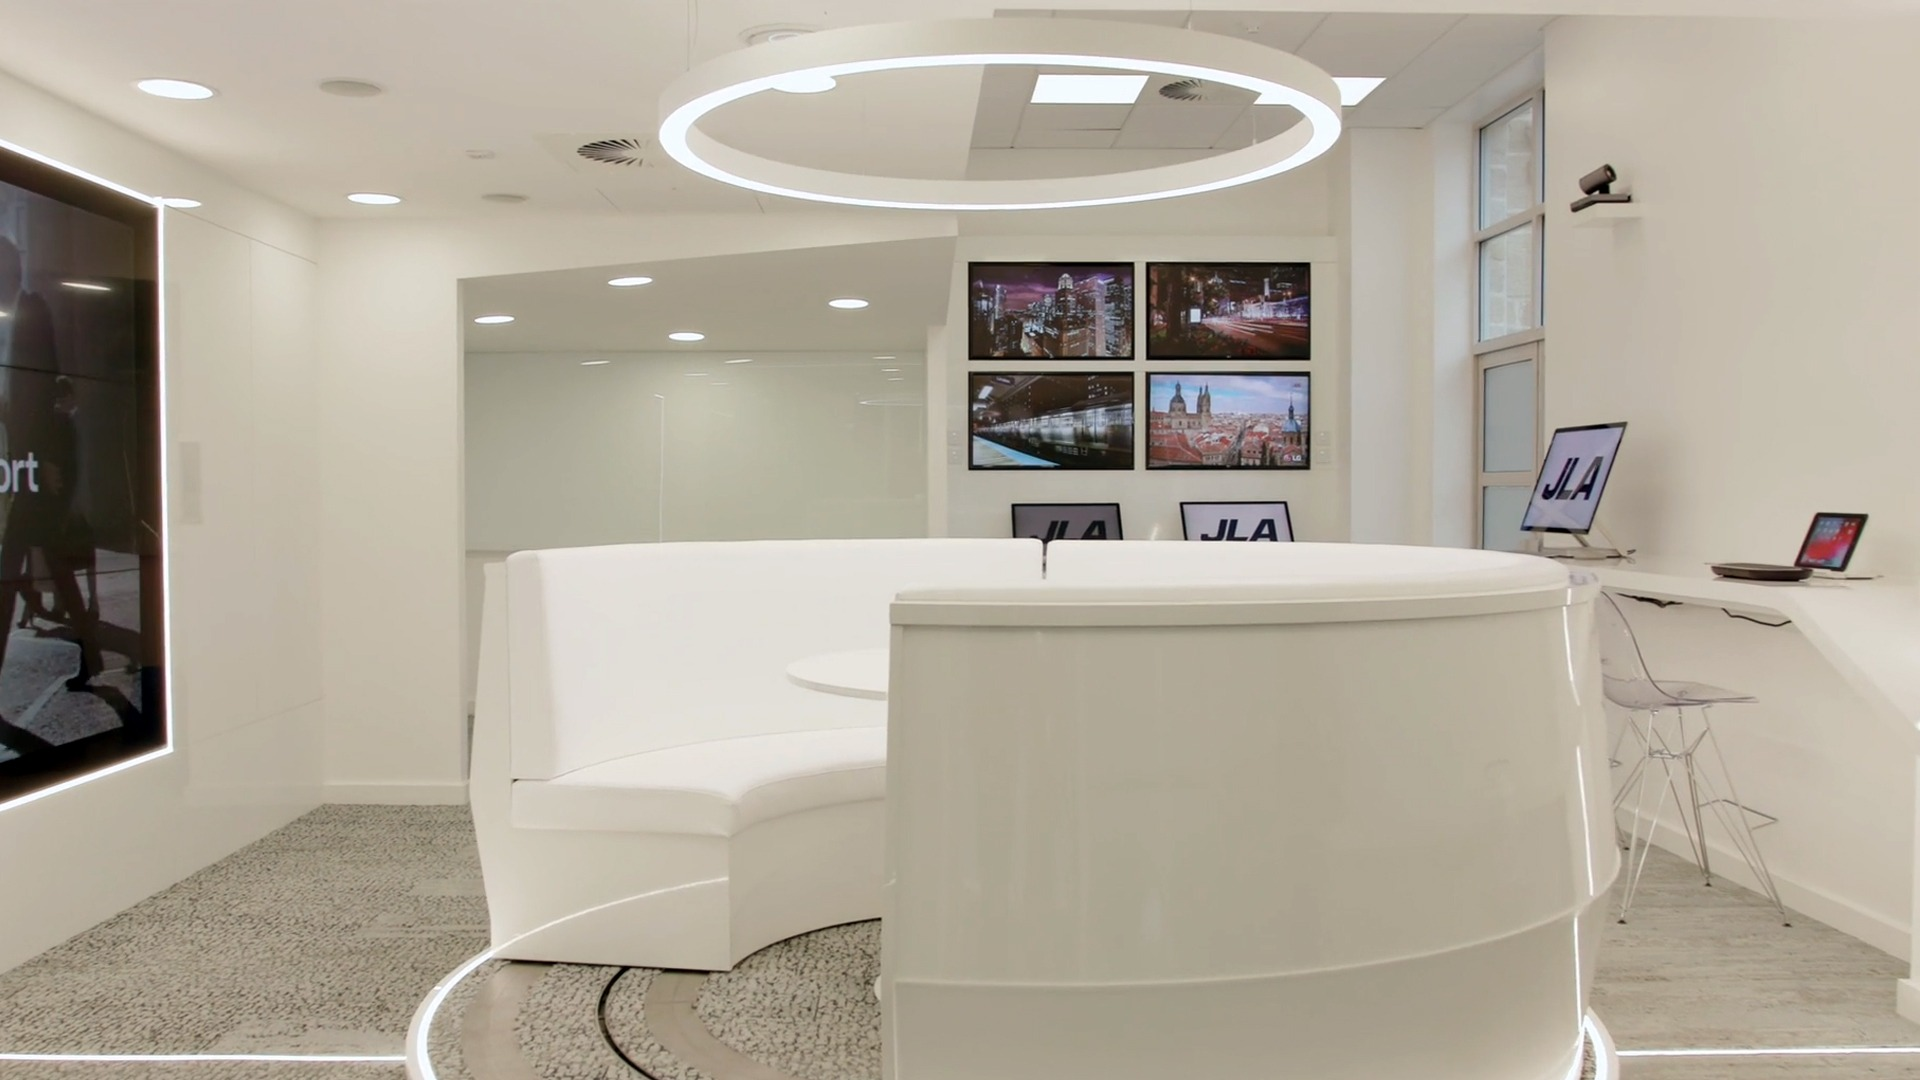 JLA - Creating an innovation space at their HQ